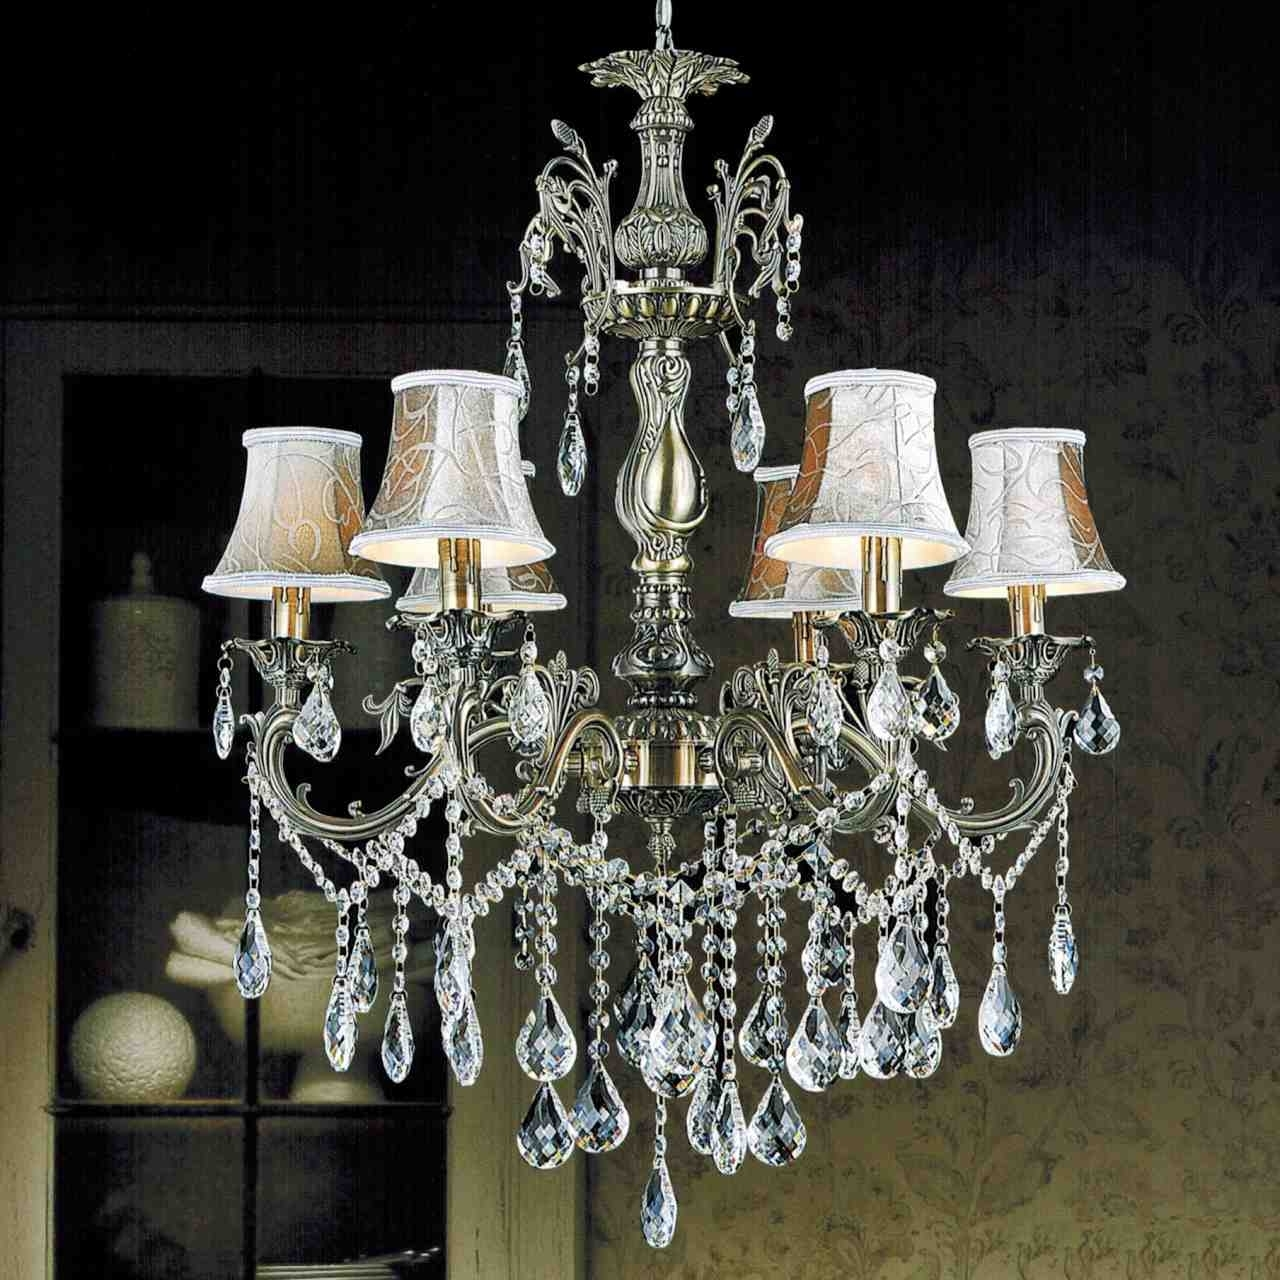 Brass And Crystal Chandeliers With Best And Newest Brizzo Lighting Stores (View 5 of 15)